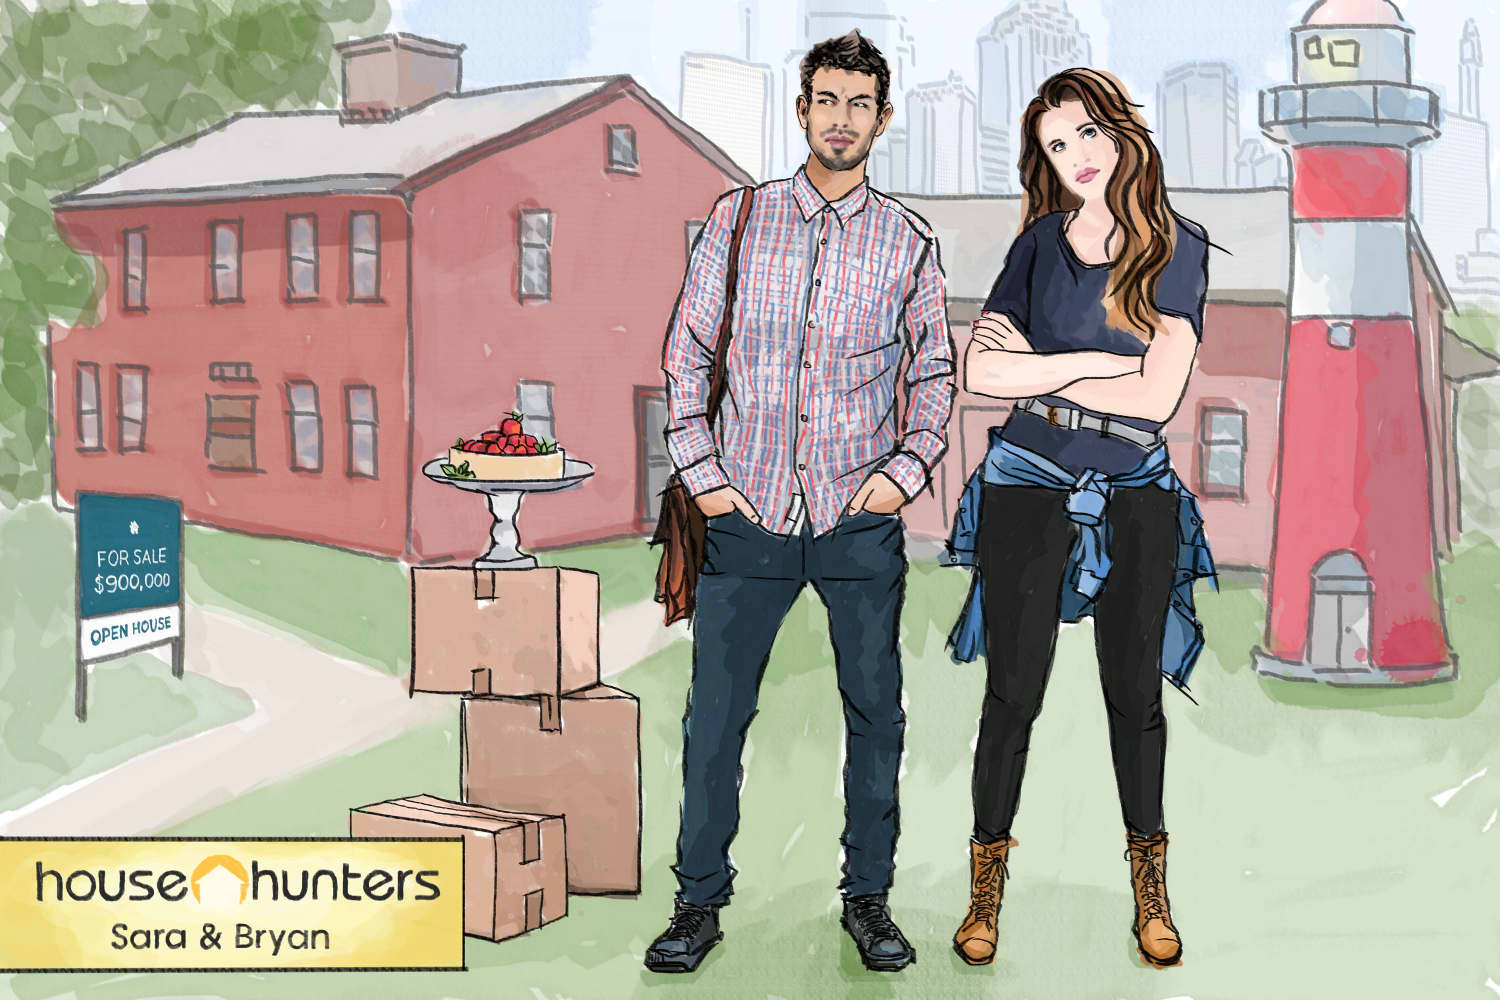 I Tried This 'House Hunters' Reddit Hack That Predicts Every Winner